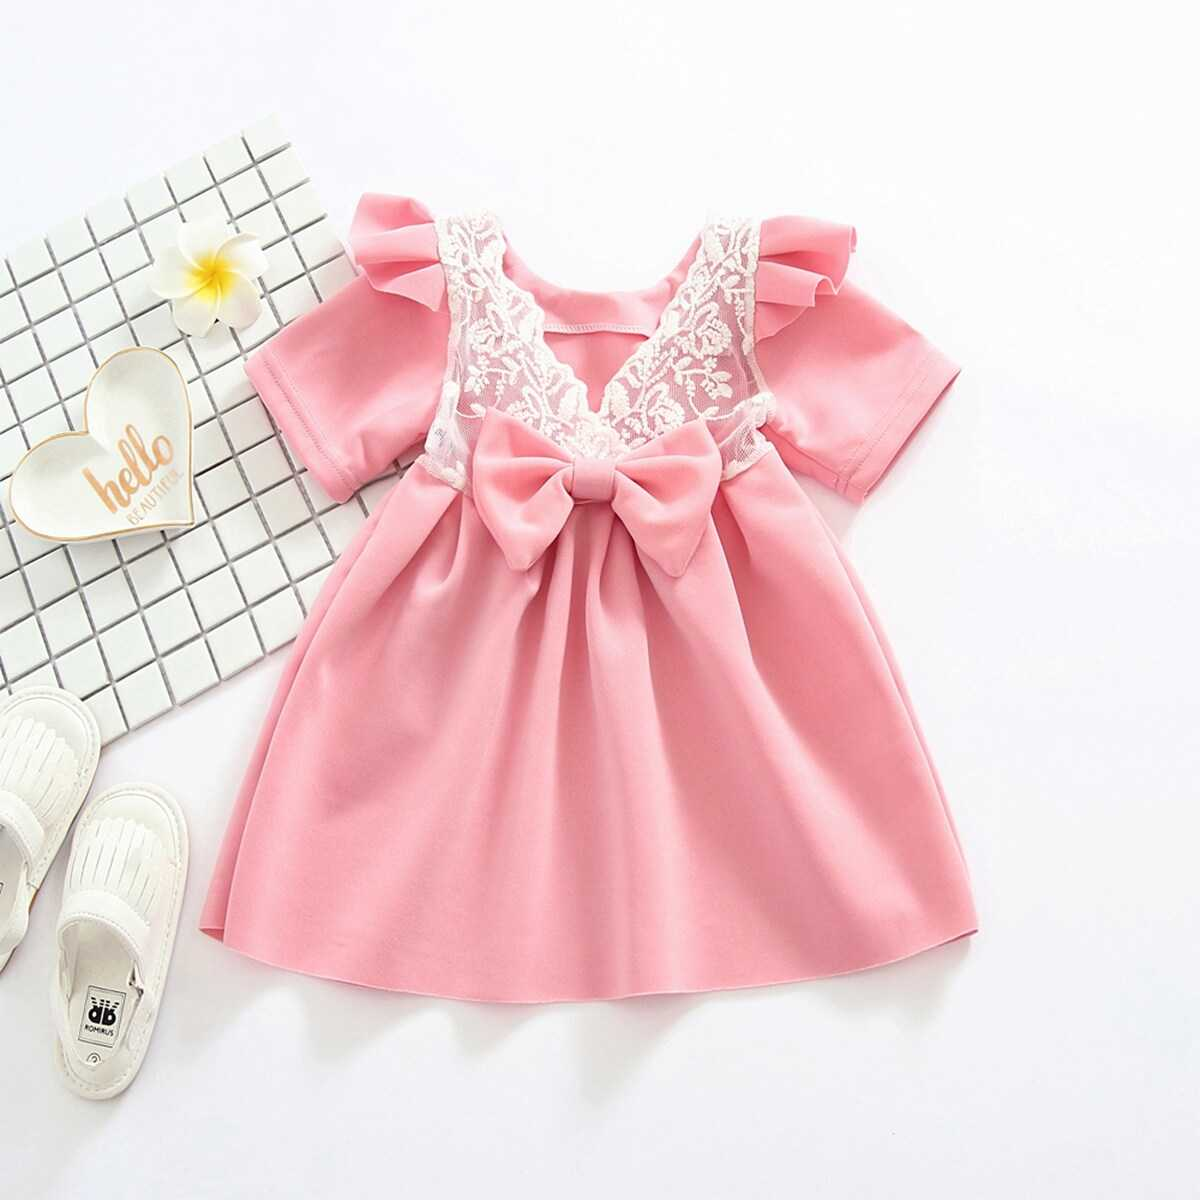 Toddler Girls Contrast Lace Bow A-line Dress - Shein - GOOFASH